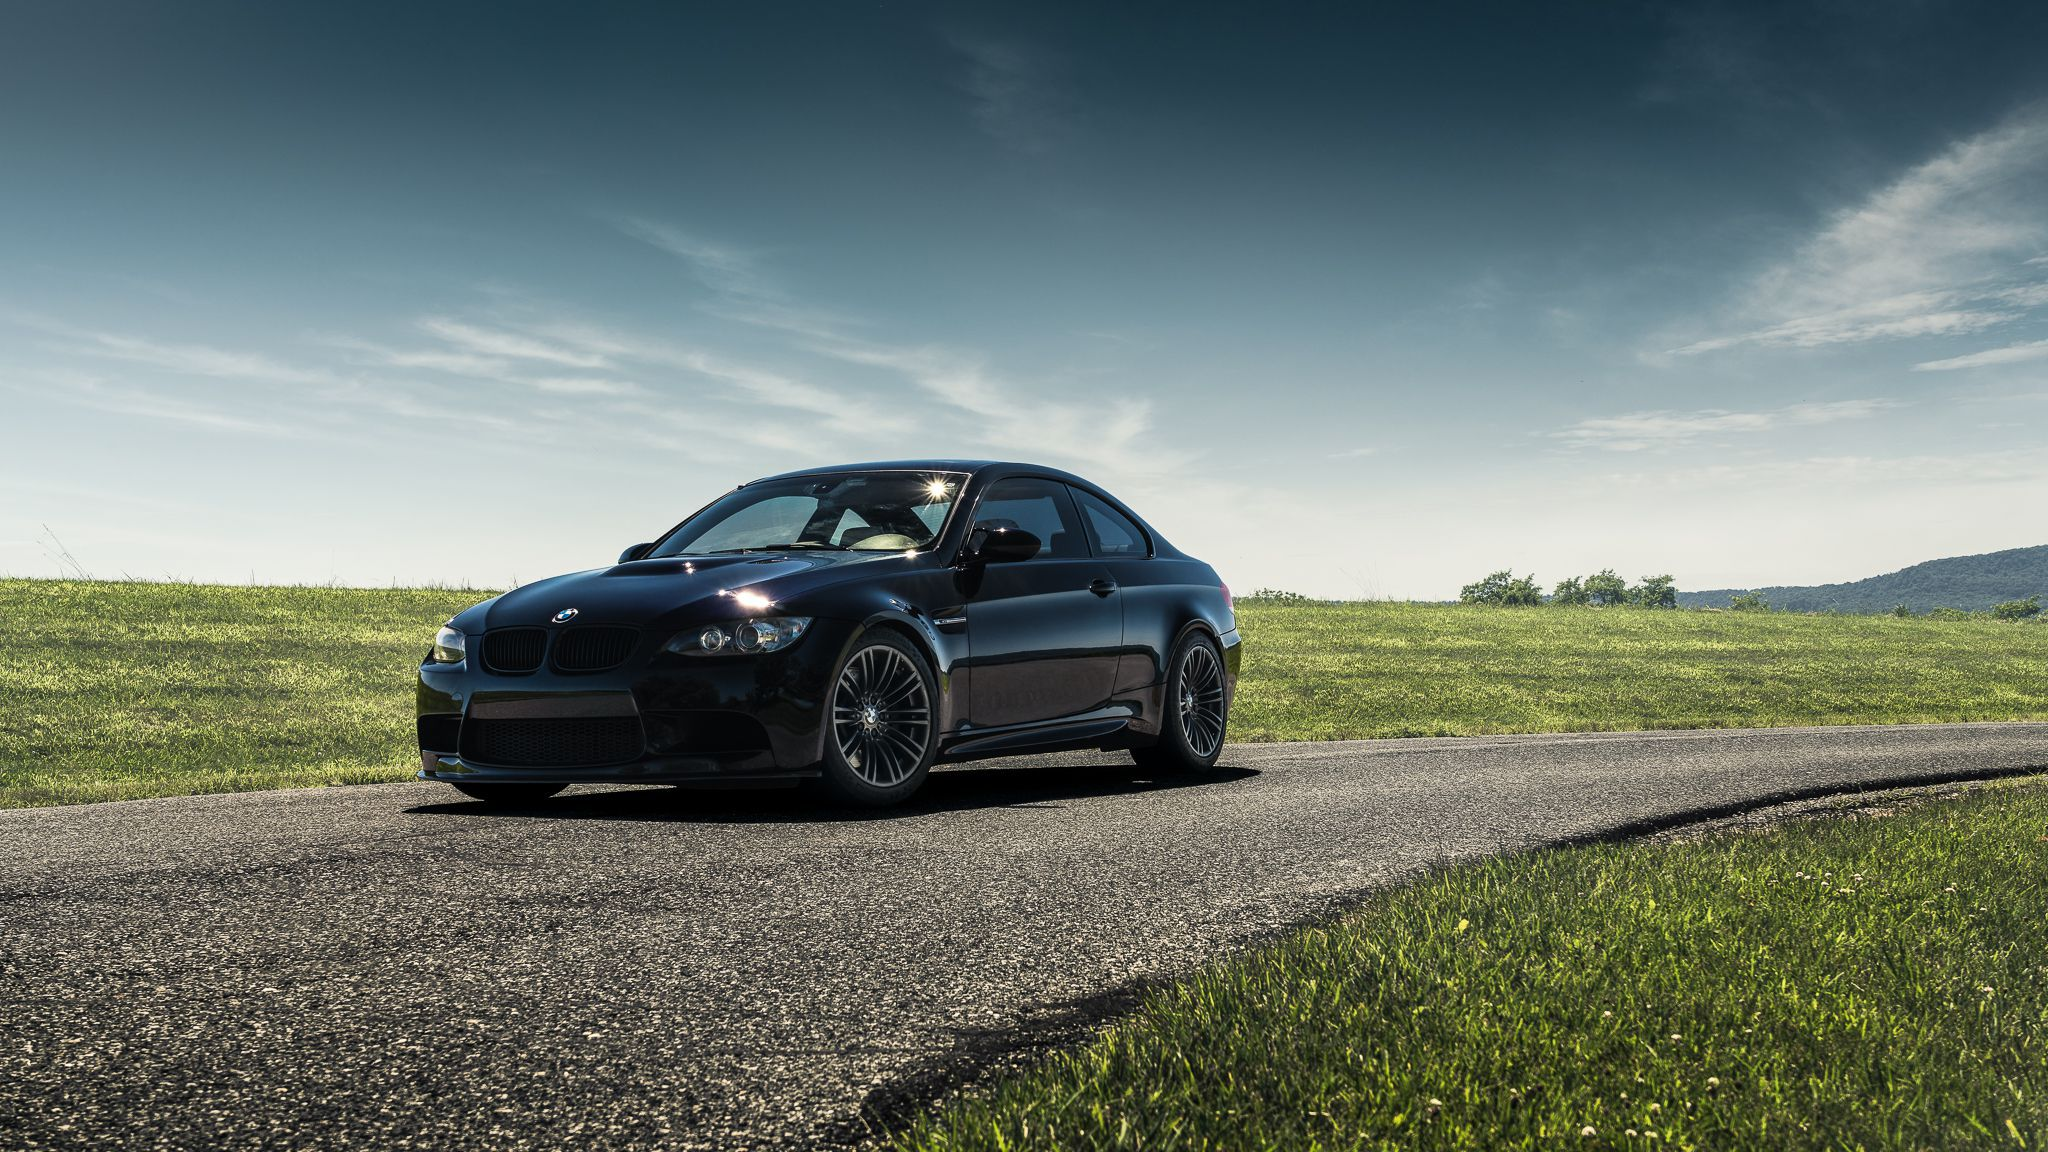 17 images about BMW M3 E92 (Coupe)